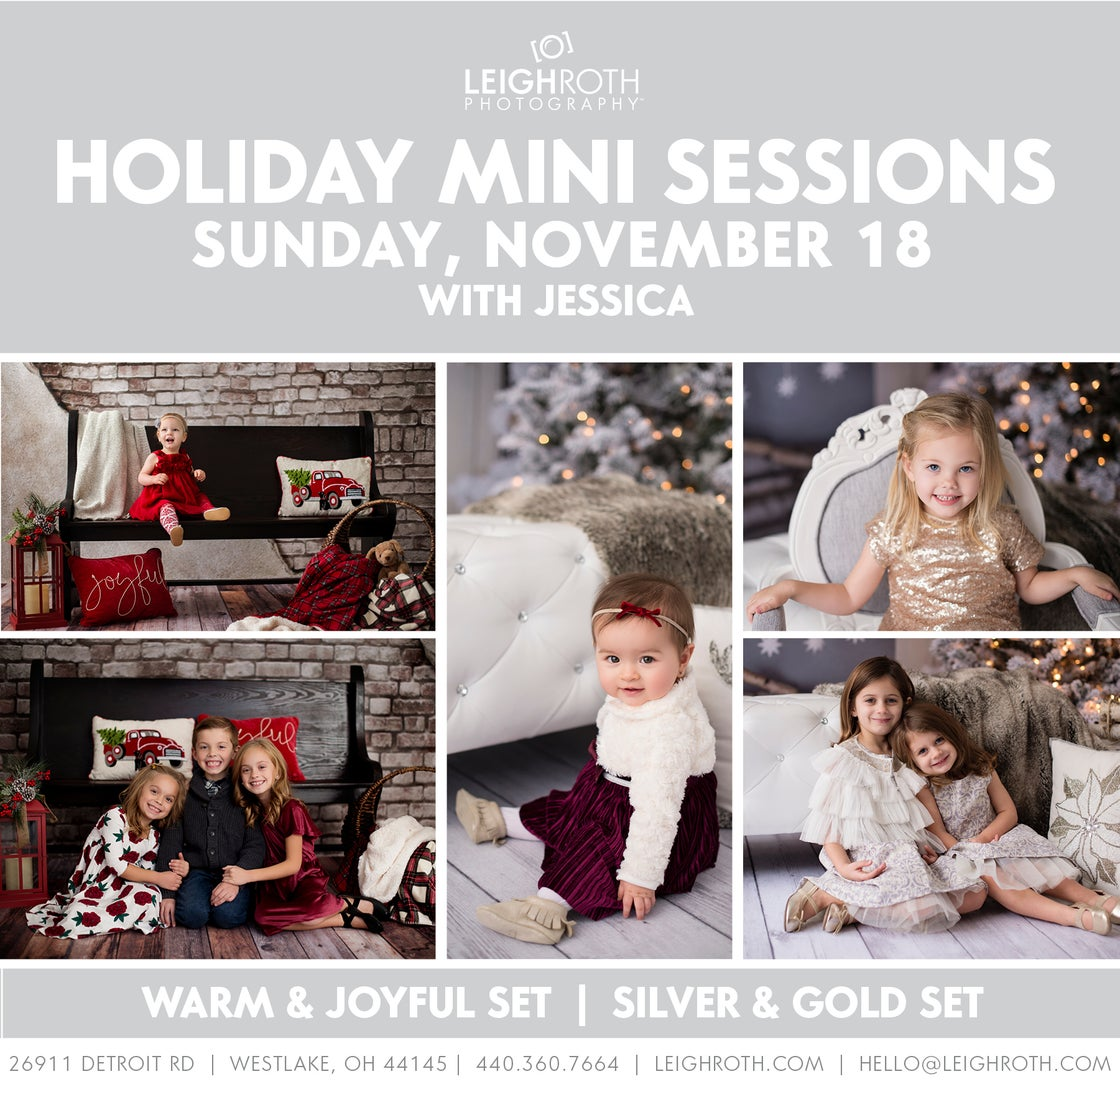 Image of HOLIDAY MINI SESSIONS - SUNDAY, NOVEMBER 18 with Jessica